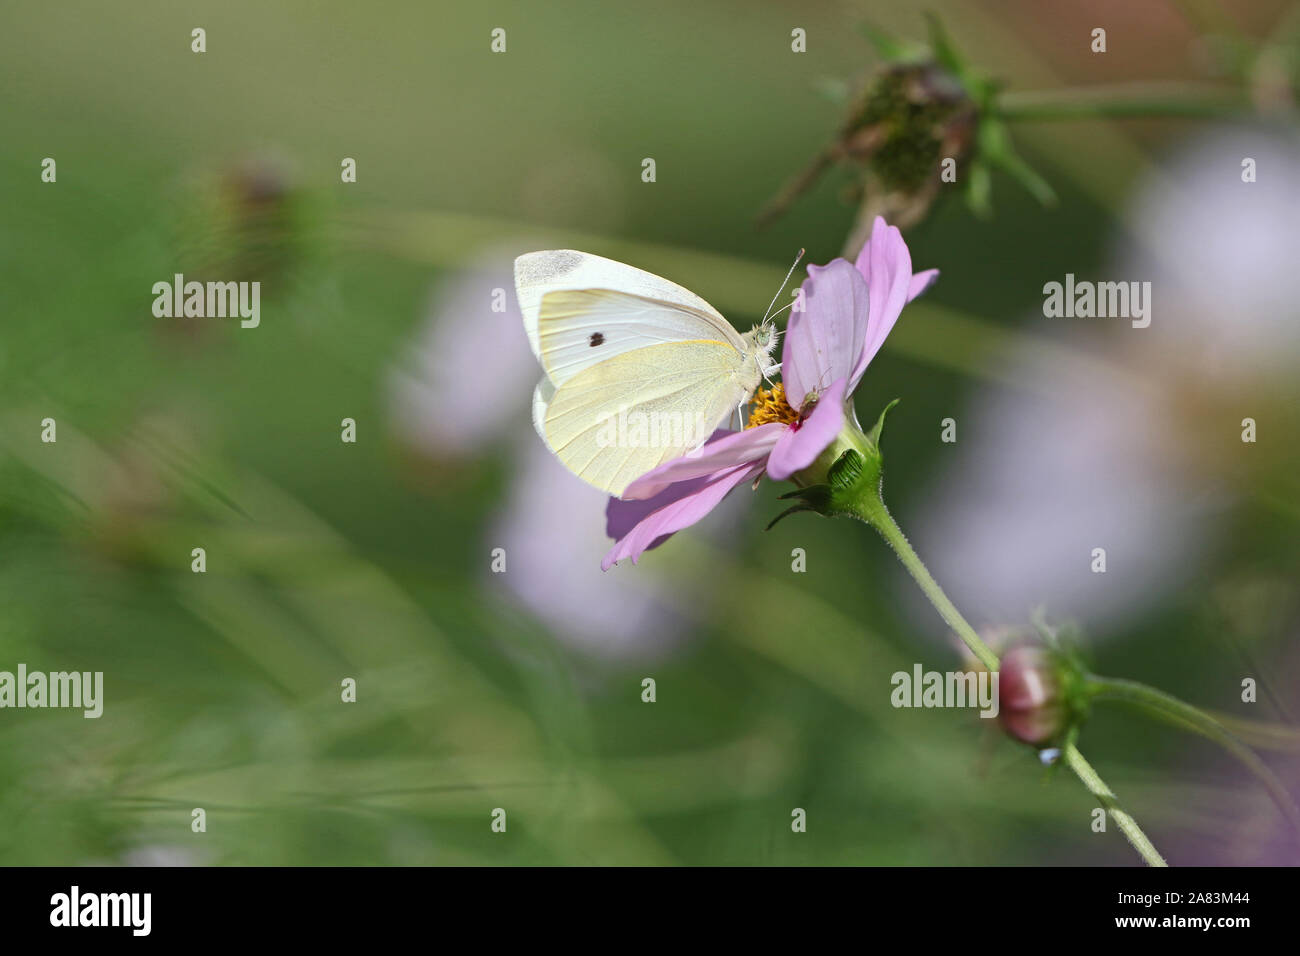 small white or cabbage white butterfly closeup Latin pieris rapae collecting pollen on a garden cosmos bipinnatus flower also called a Mexican aster Stock Photo